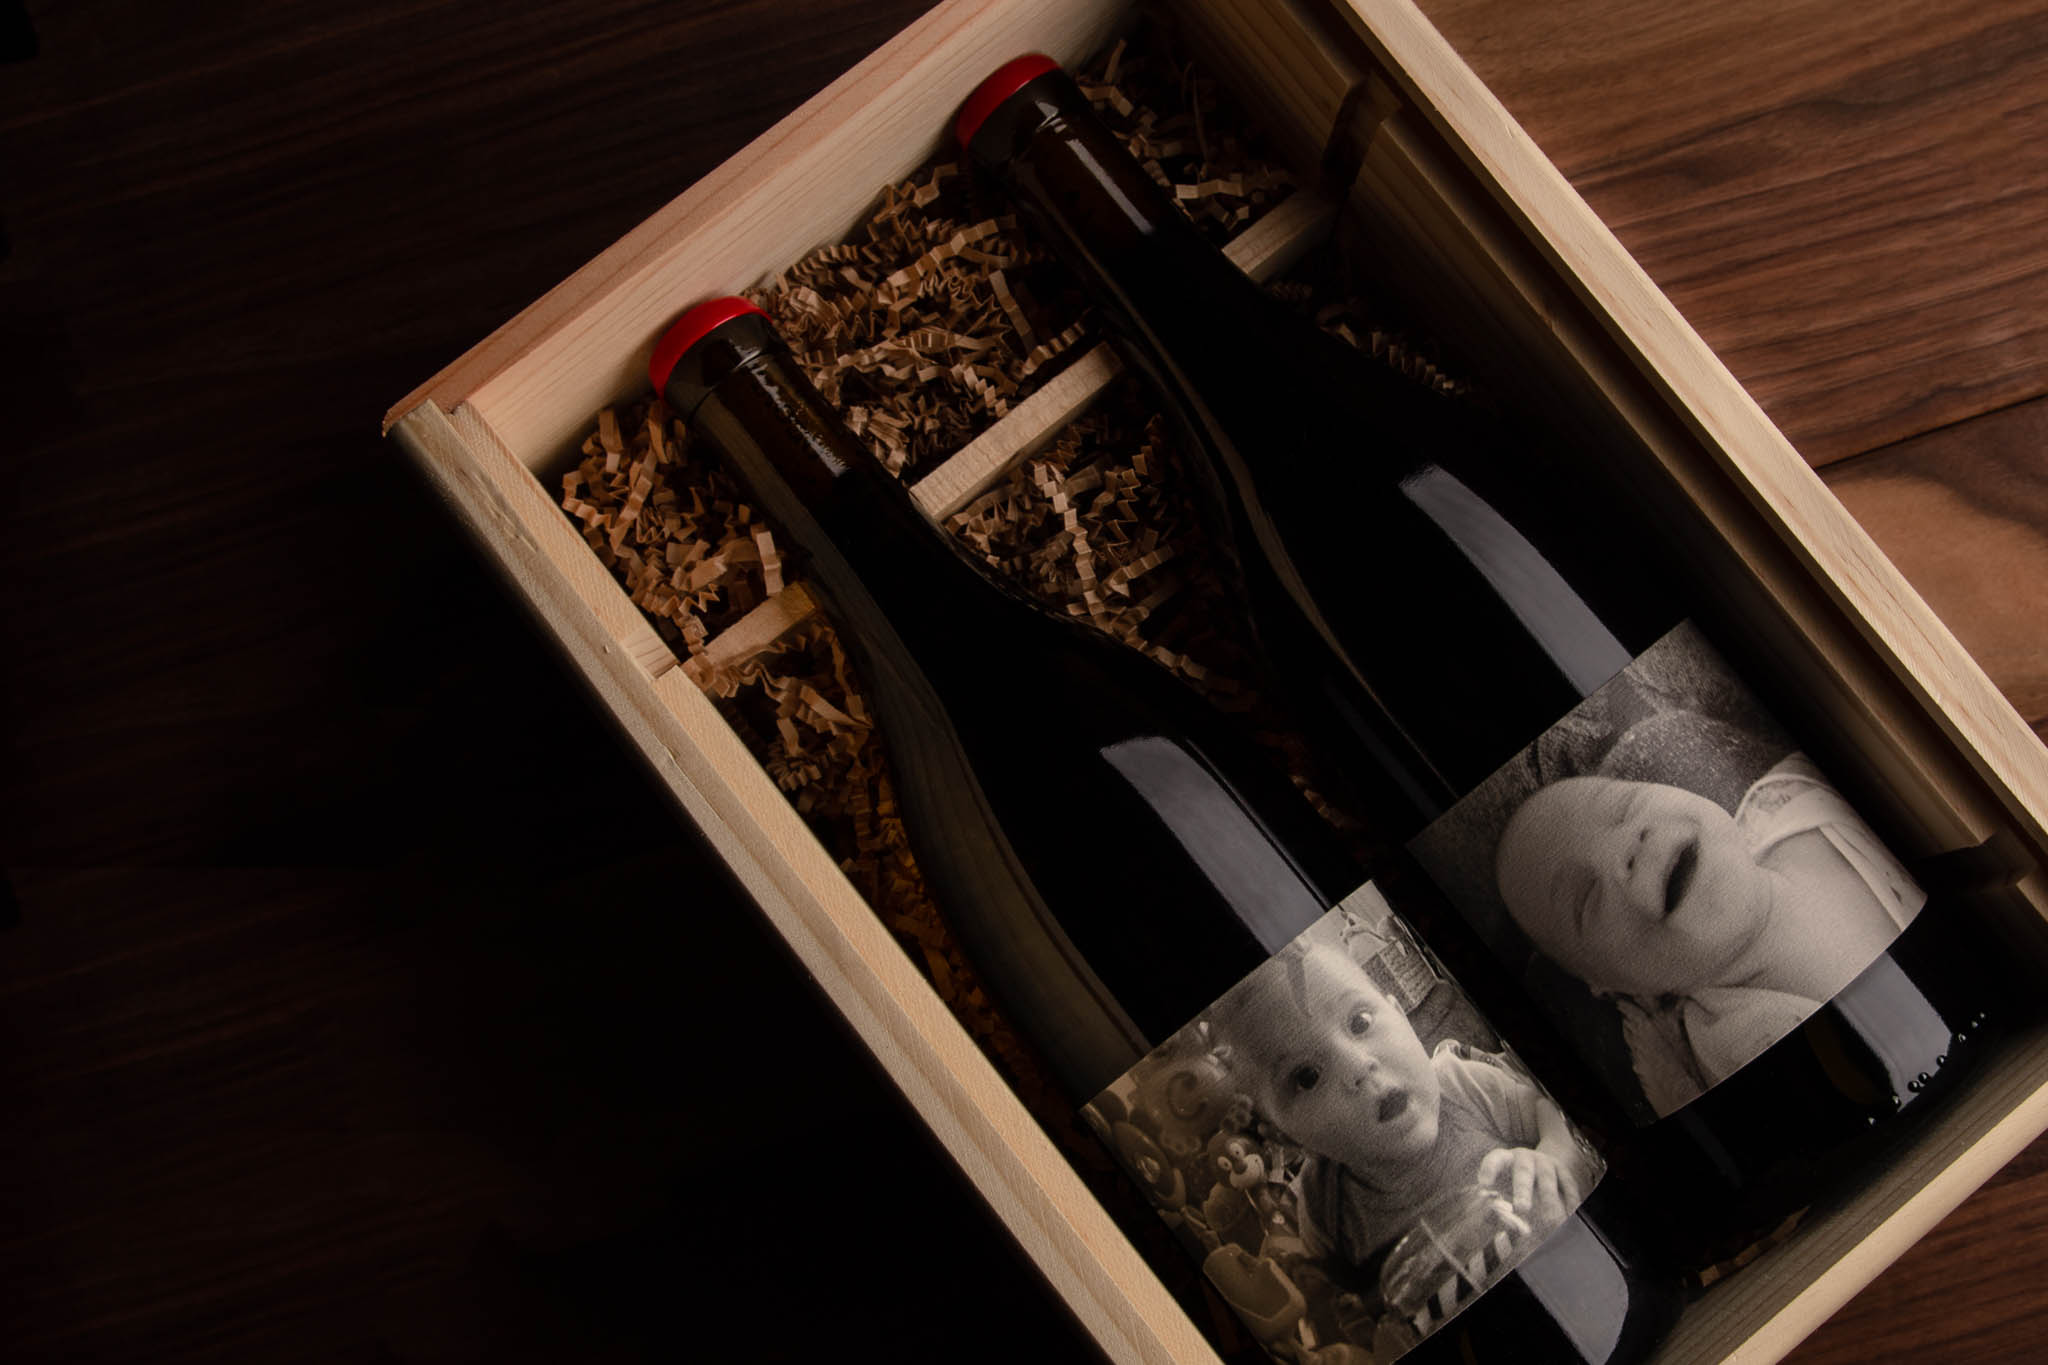 Artisanally Crafted Wooden Wine Box for Deovlet Wines in San Luis Obispo's Jack's Barrel Special Release